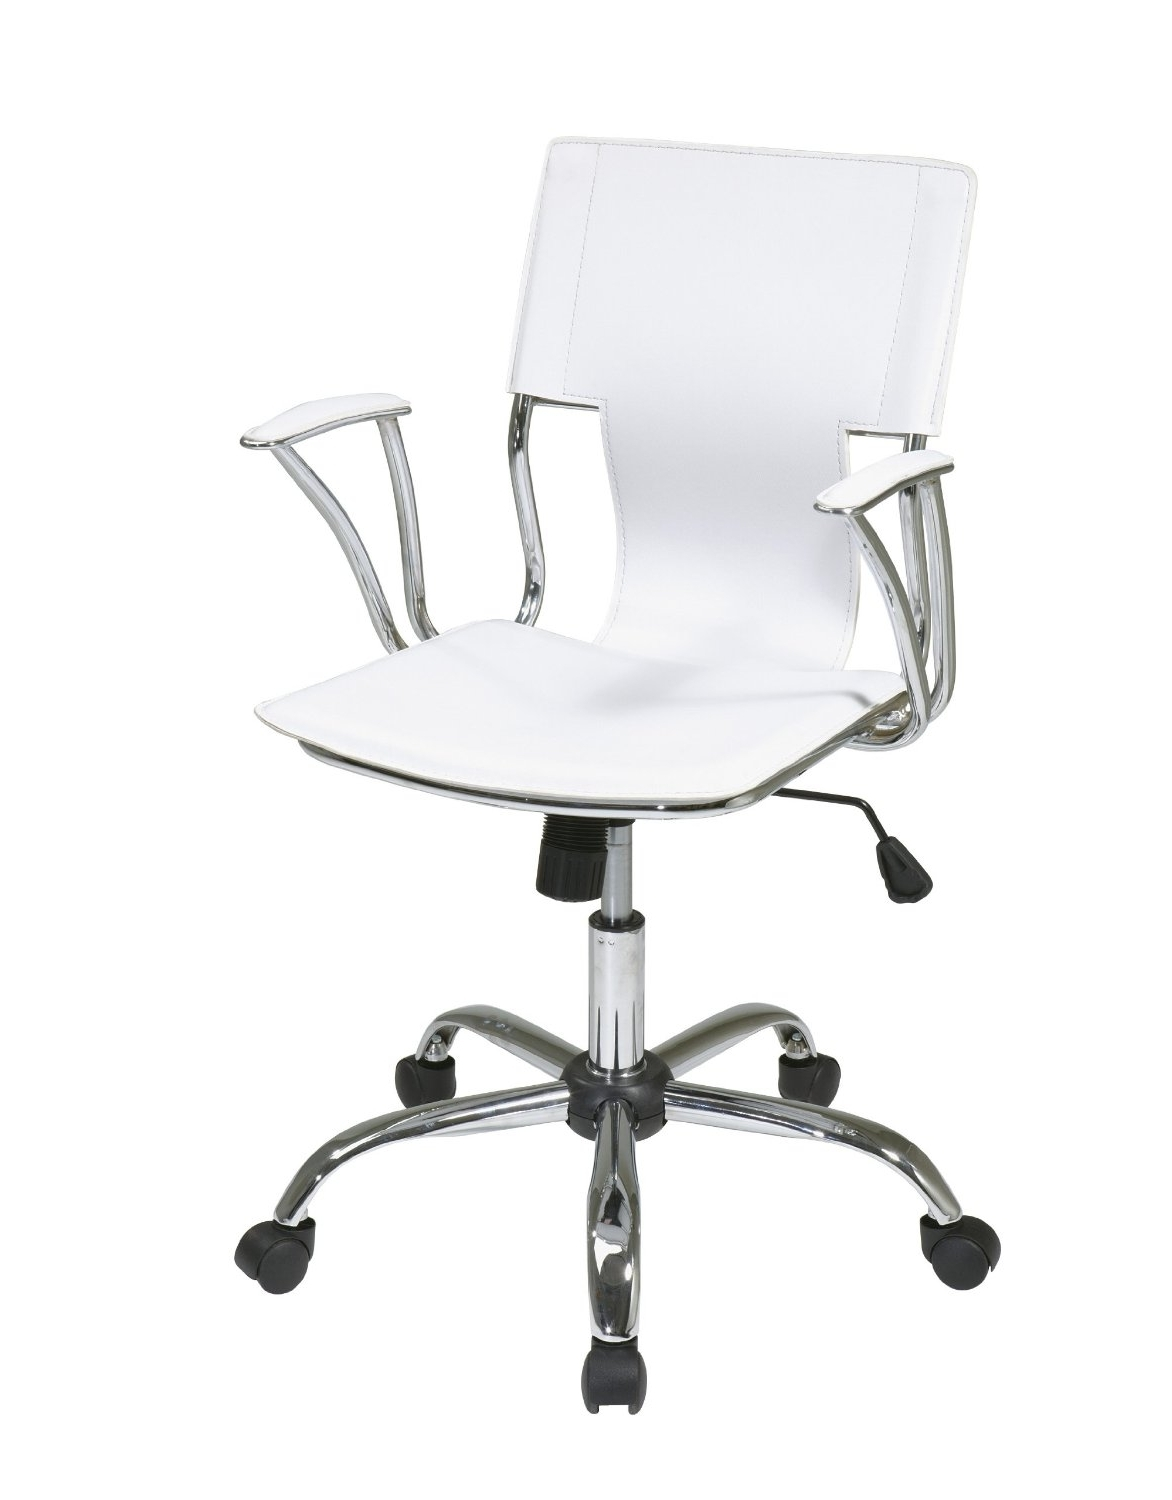 White Executive Office Chair Ergonomic Ultra Modern 360 : Best Throughout Favorite Ergonomic Ultra Modern White Executive Office Chairs (View 18 of 20)